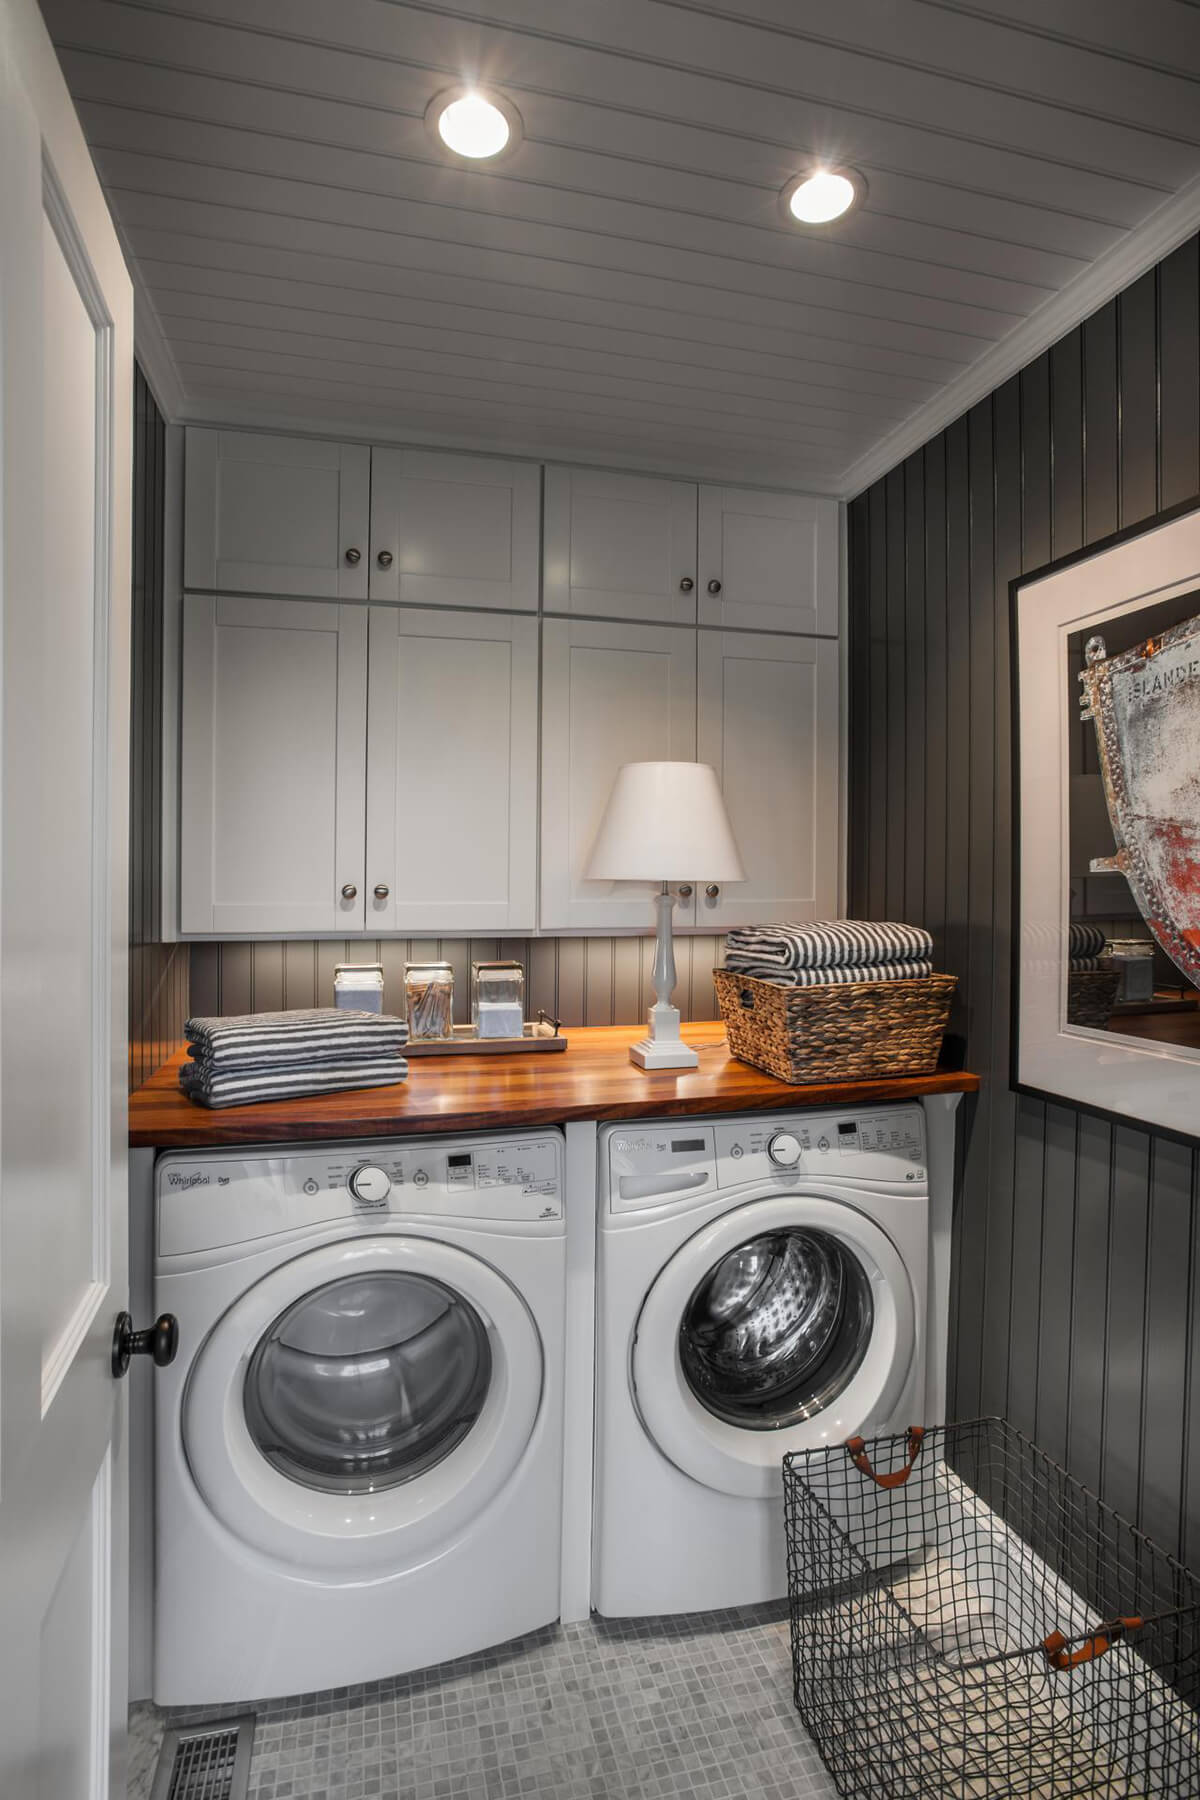 28 Best Small Laundry Room Design Ideas For 2021